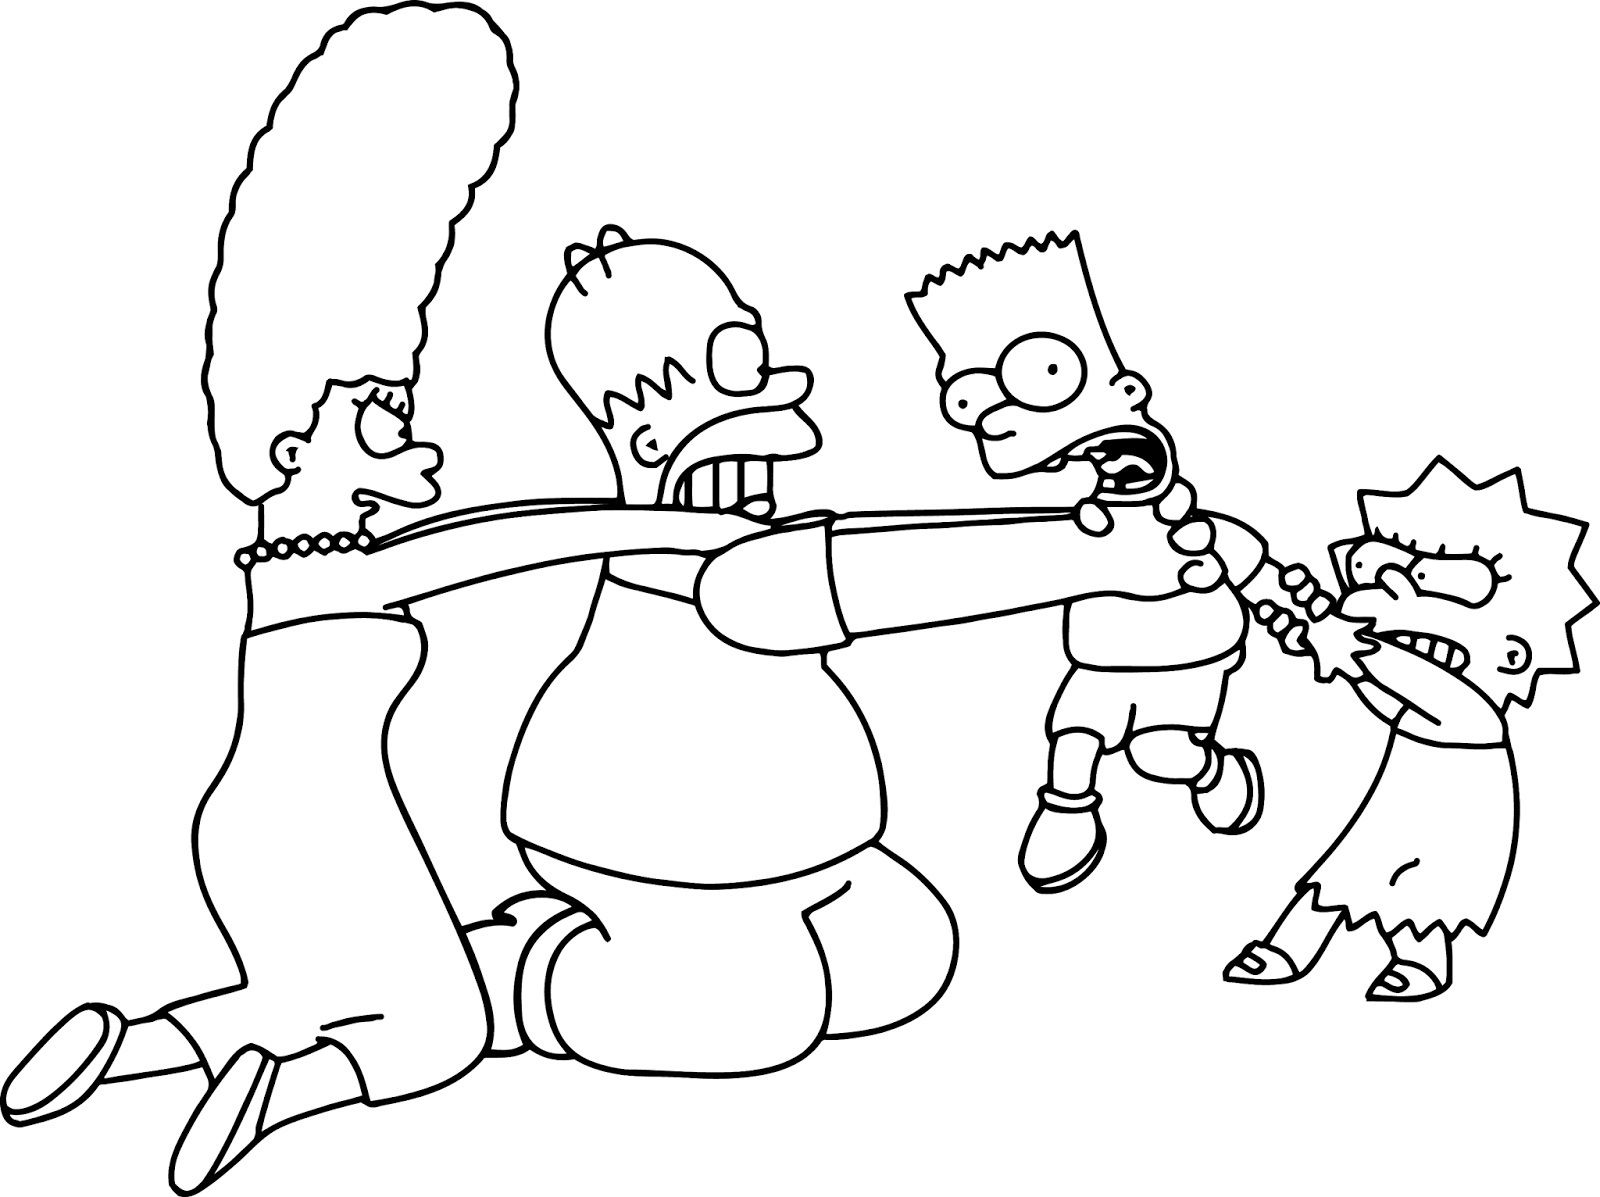 simpsons characters coloring pages  collection of